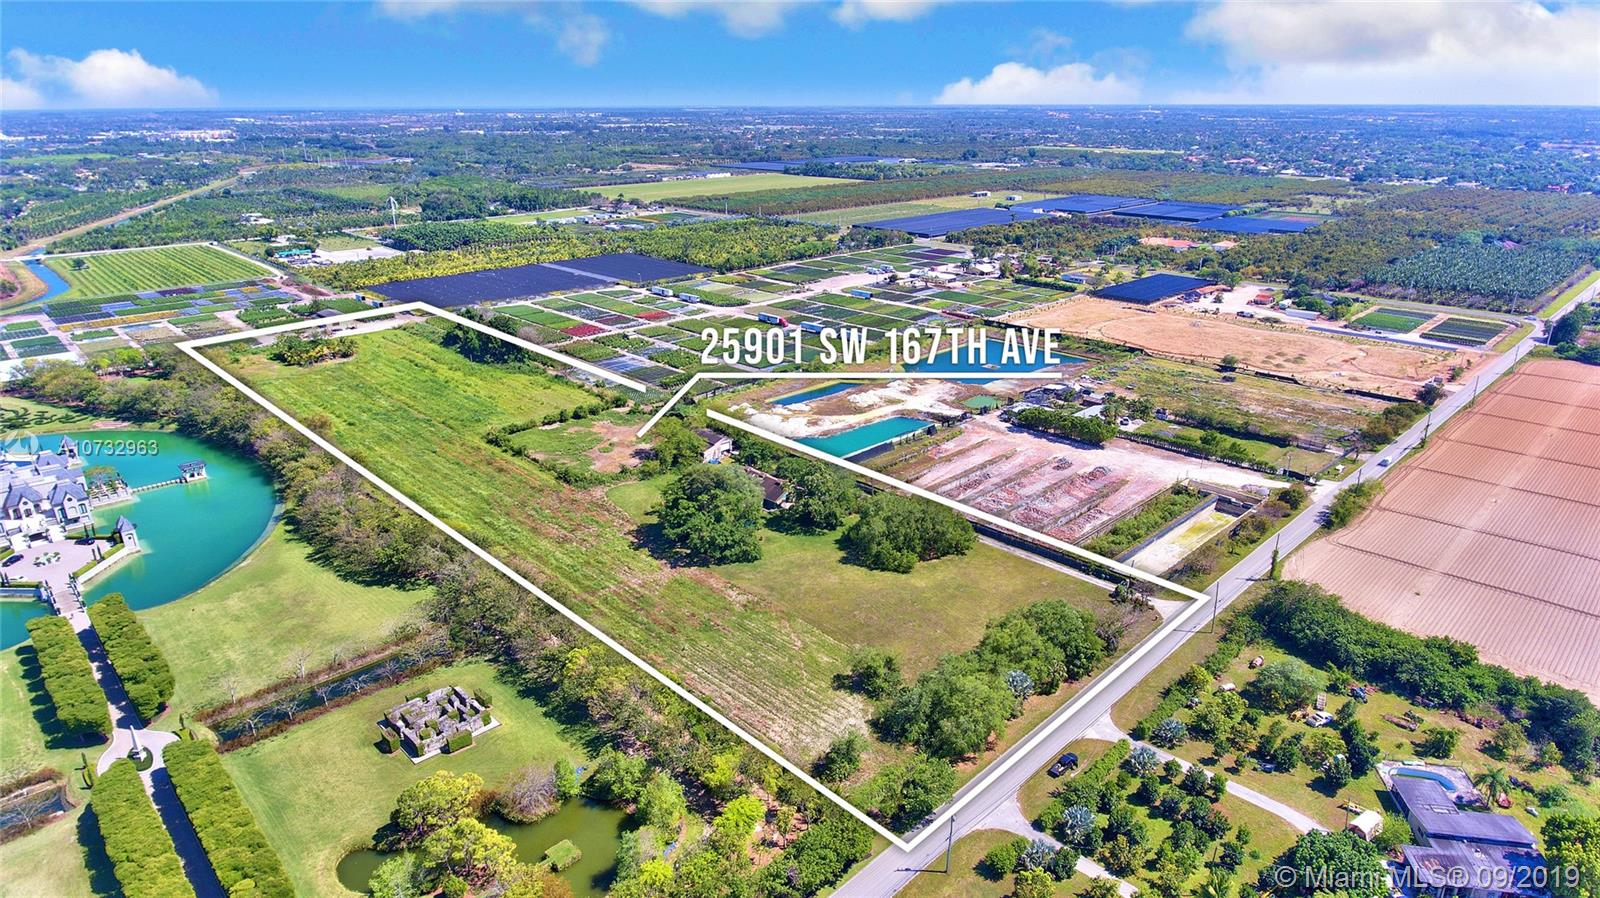 25901 SW 167th Ave, Homestead, FL 33031